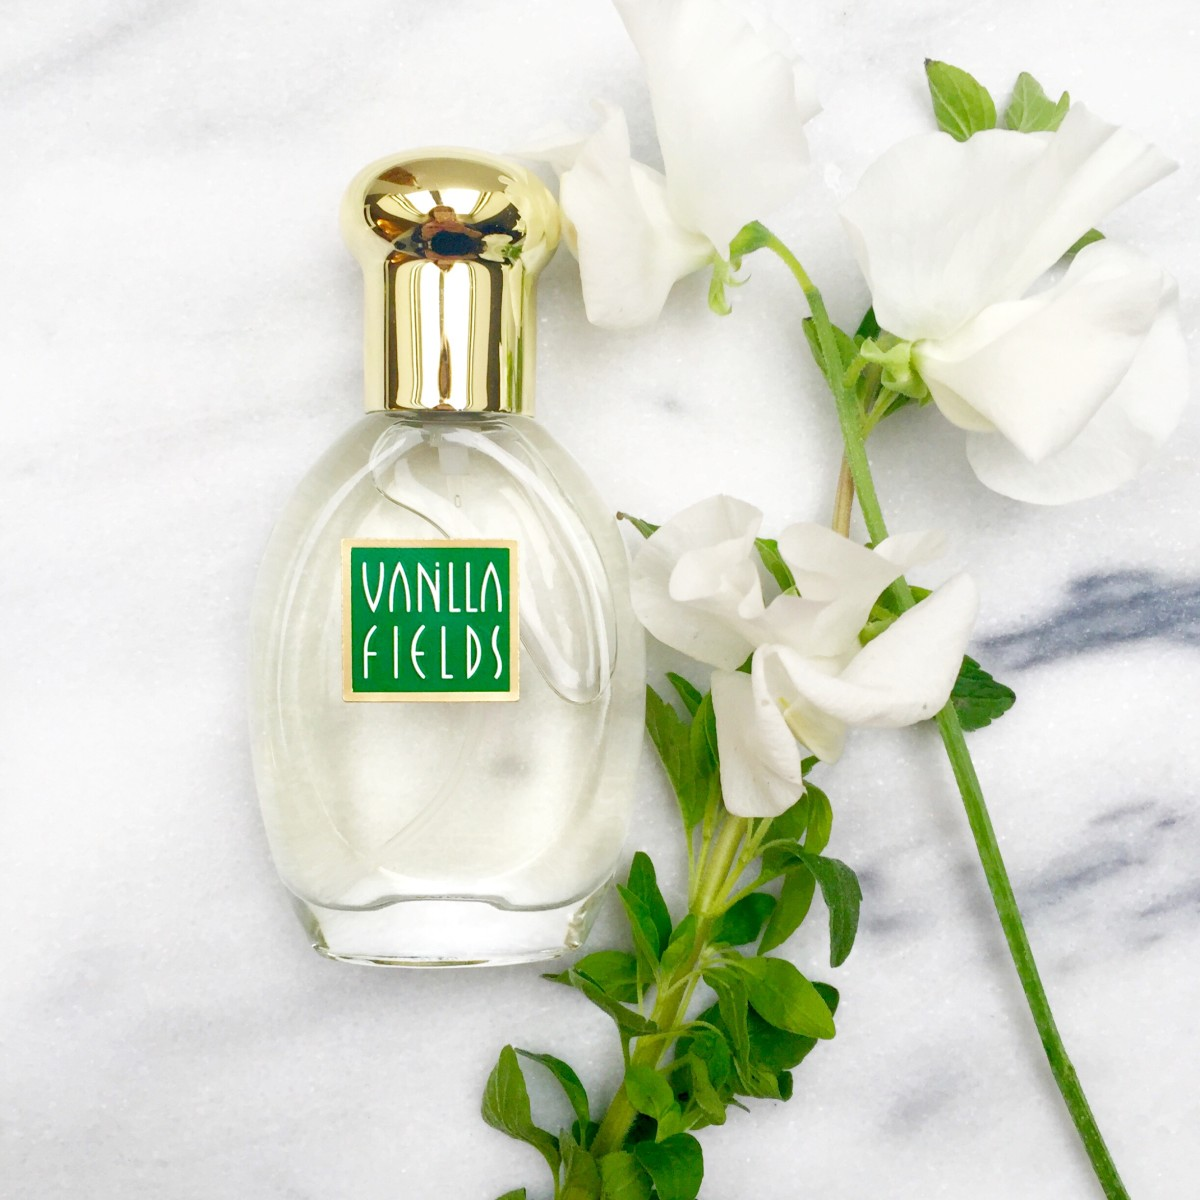 #FlashbackFriday: The Fragrance Angela Chase Would Have Worn